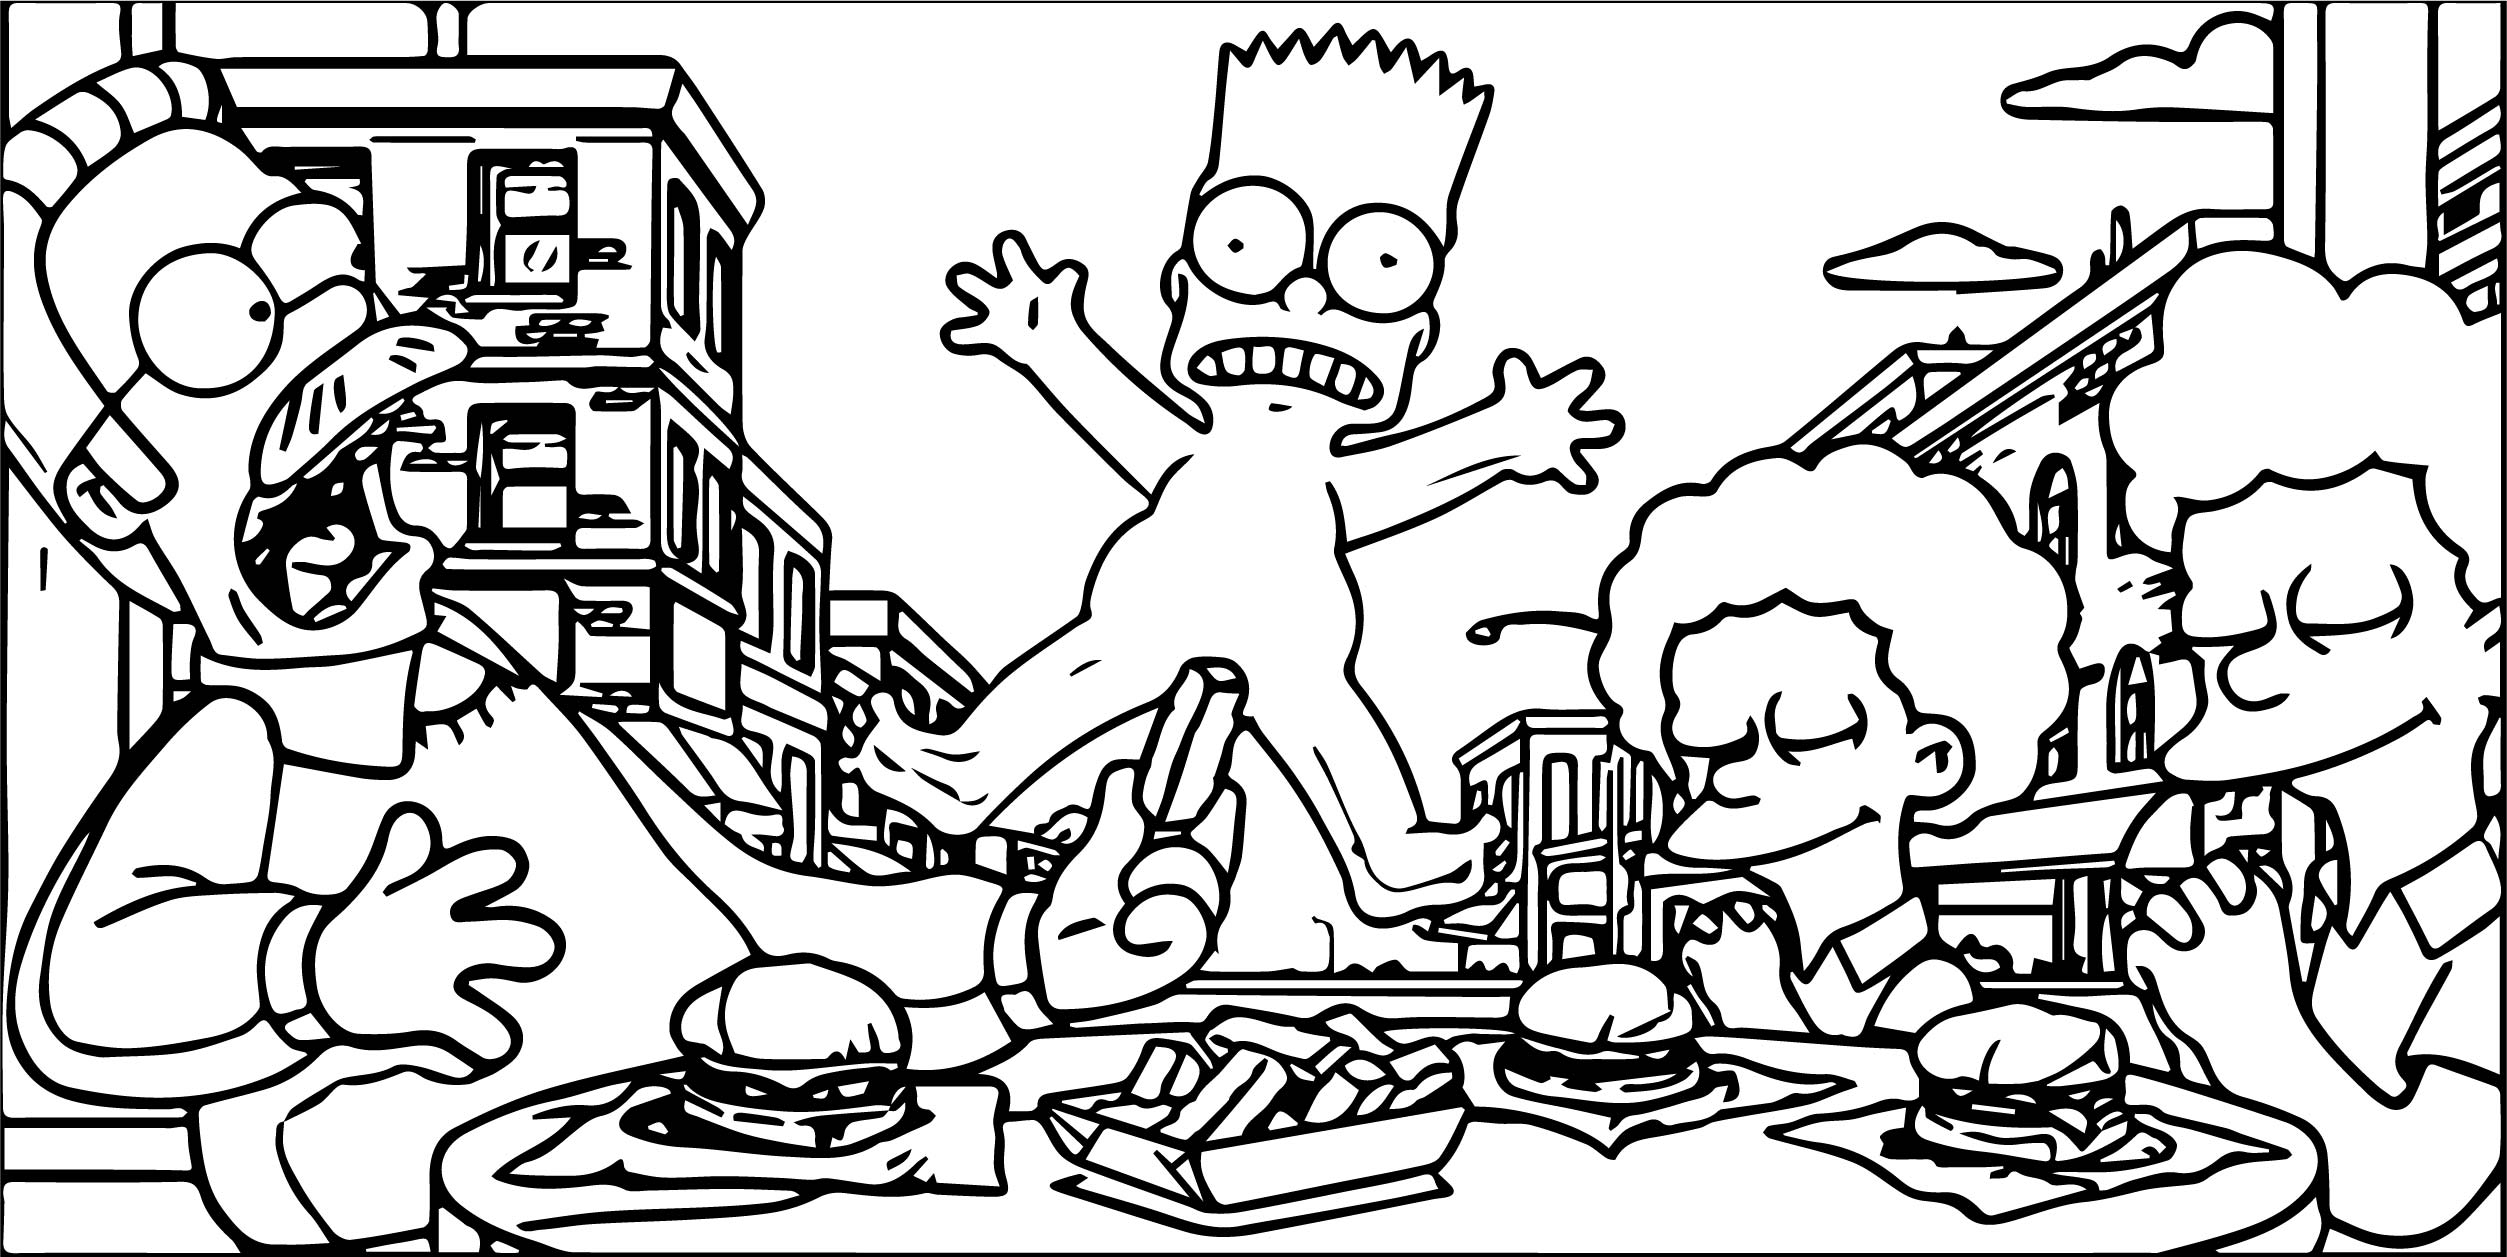 The Simpsons Enlighten With Life Lessons Coloring Page